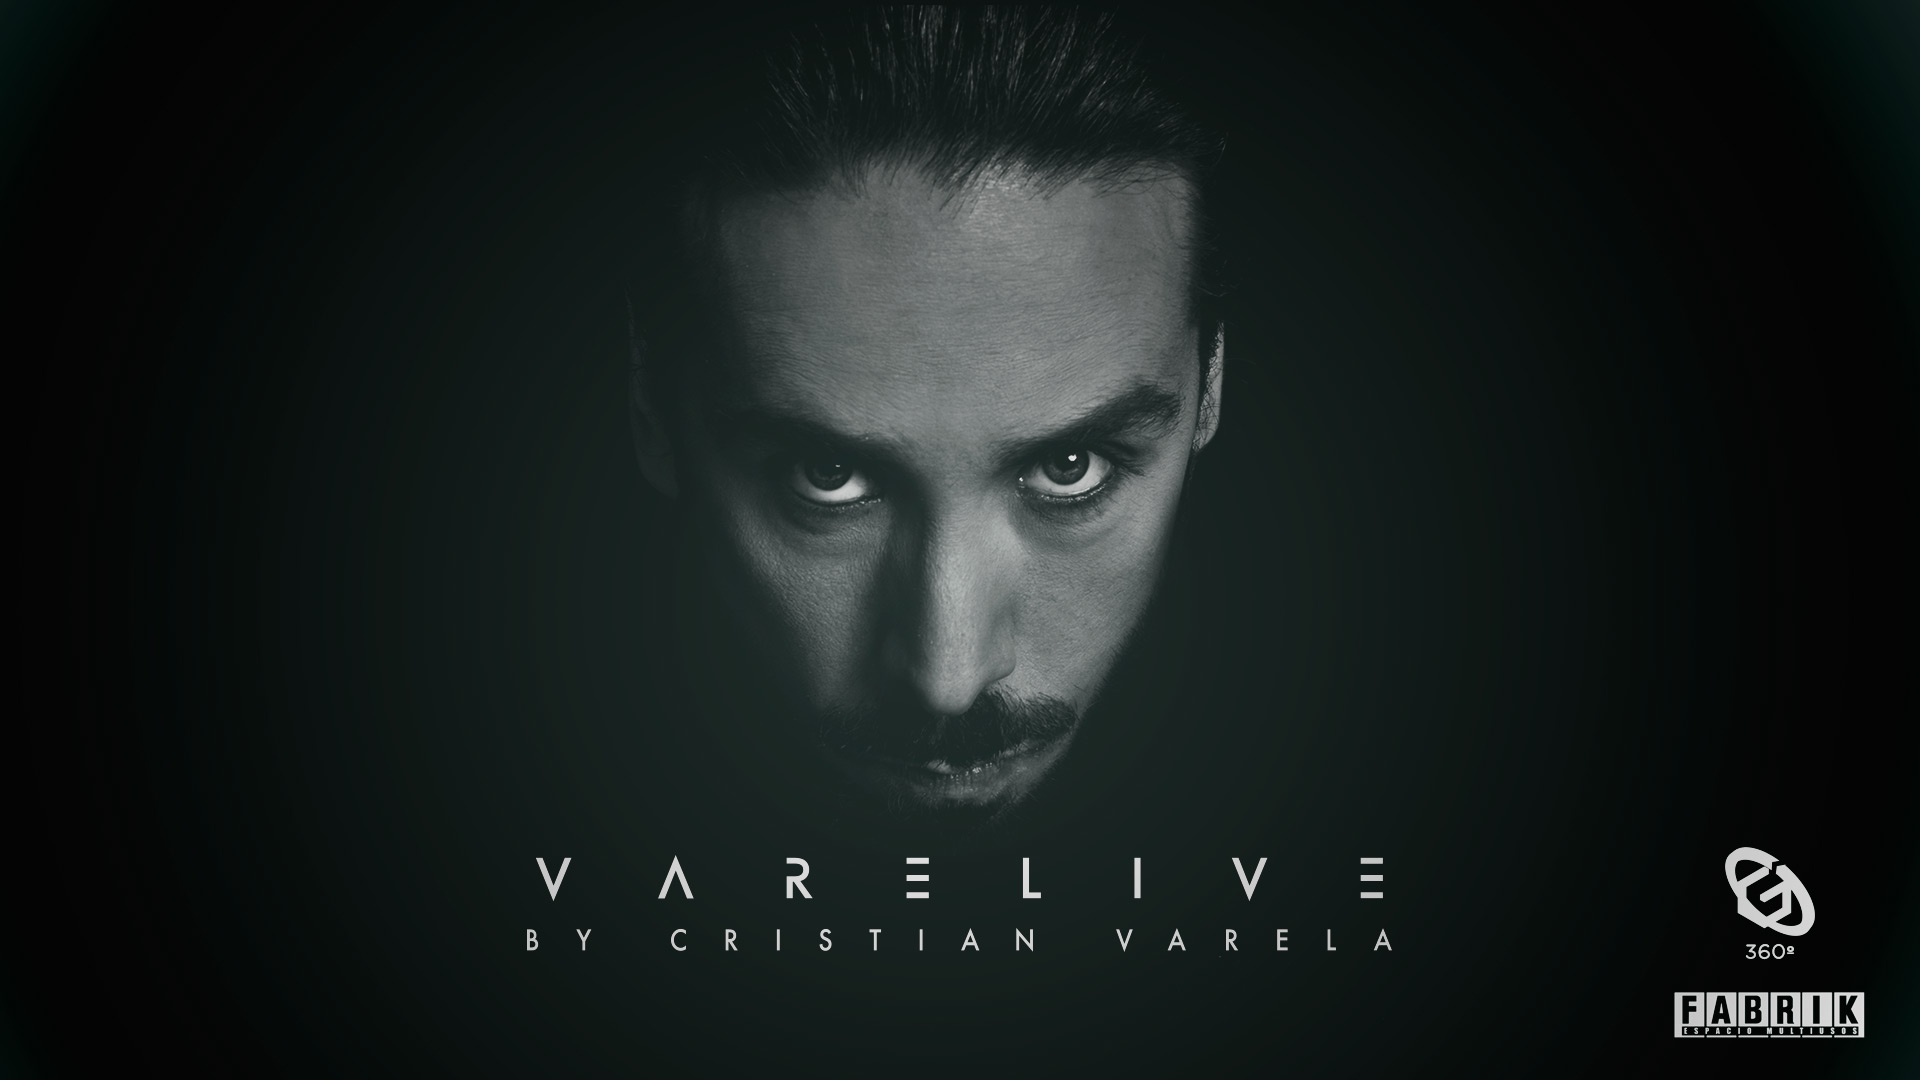 download → Cristian Varela - live at Fabrik (Madrid) - 21-Feb-2016